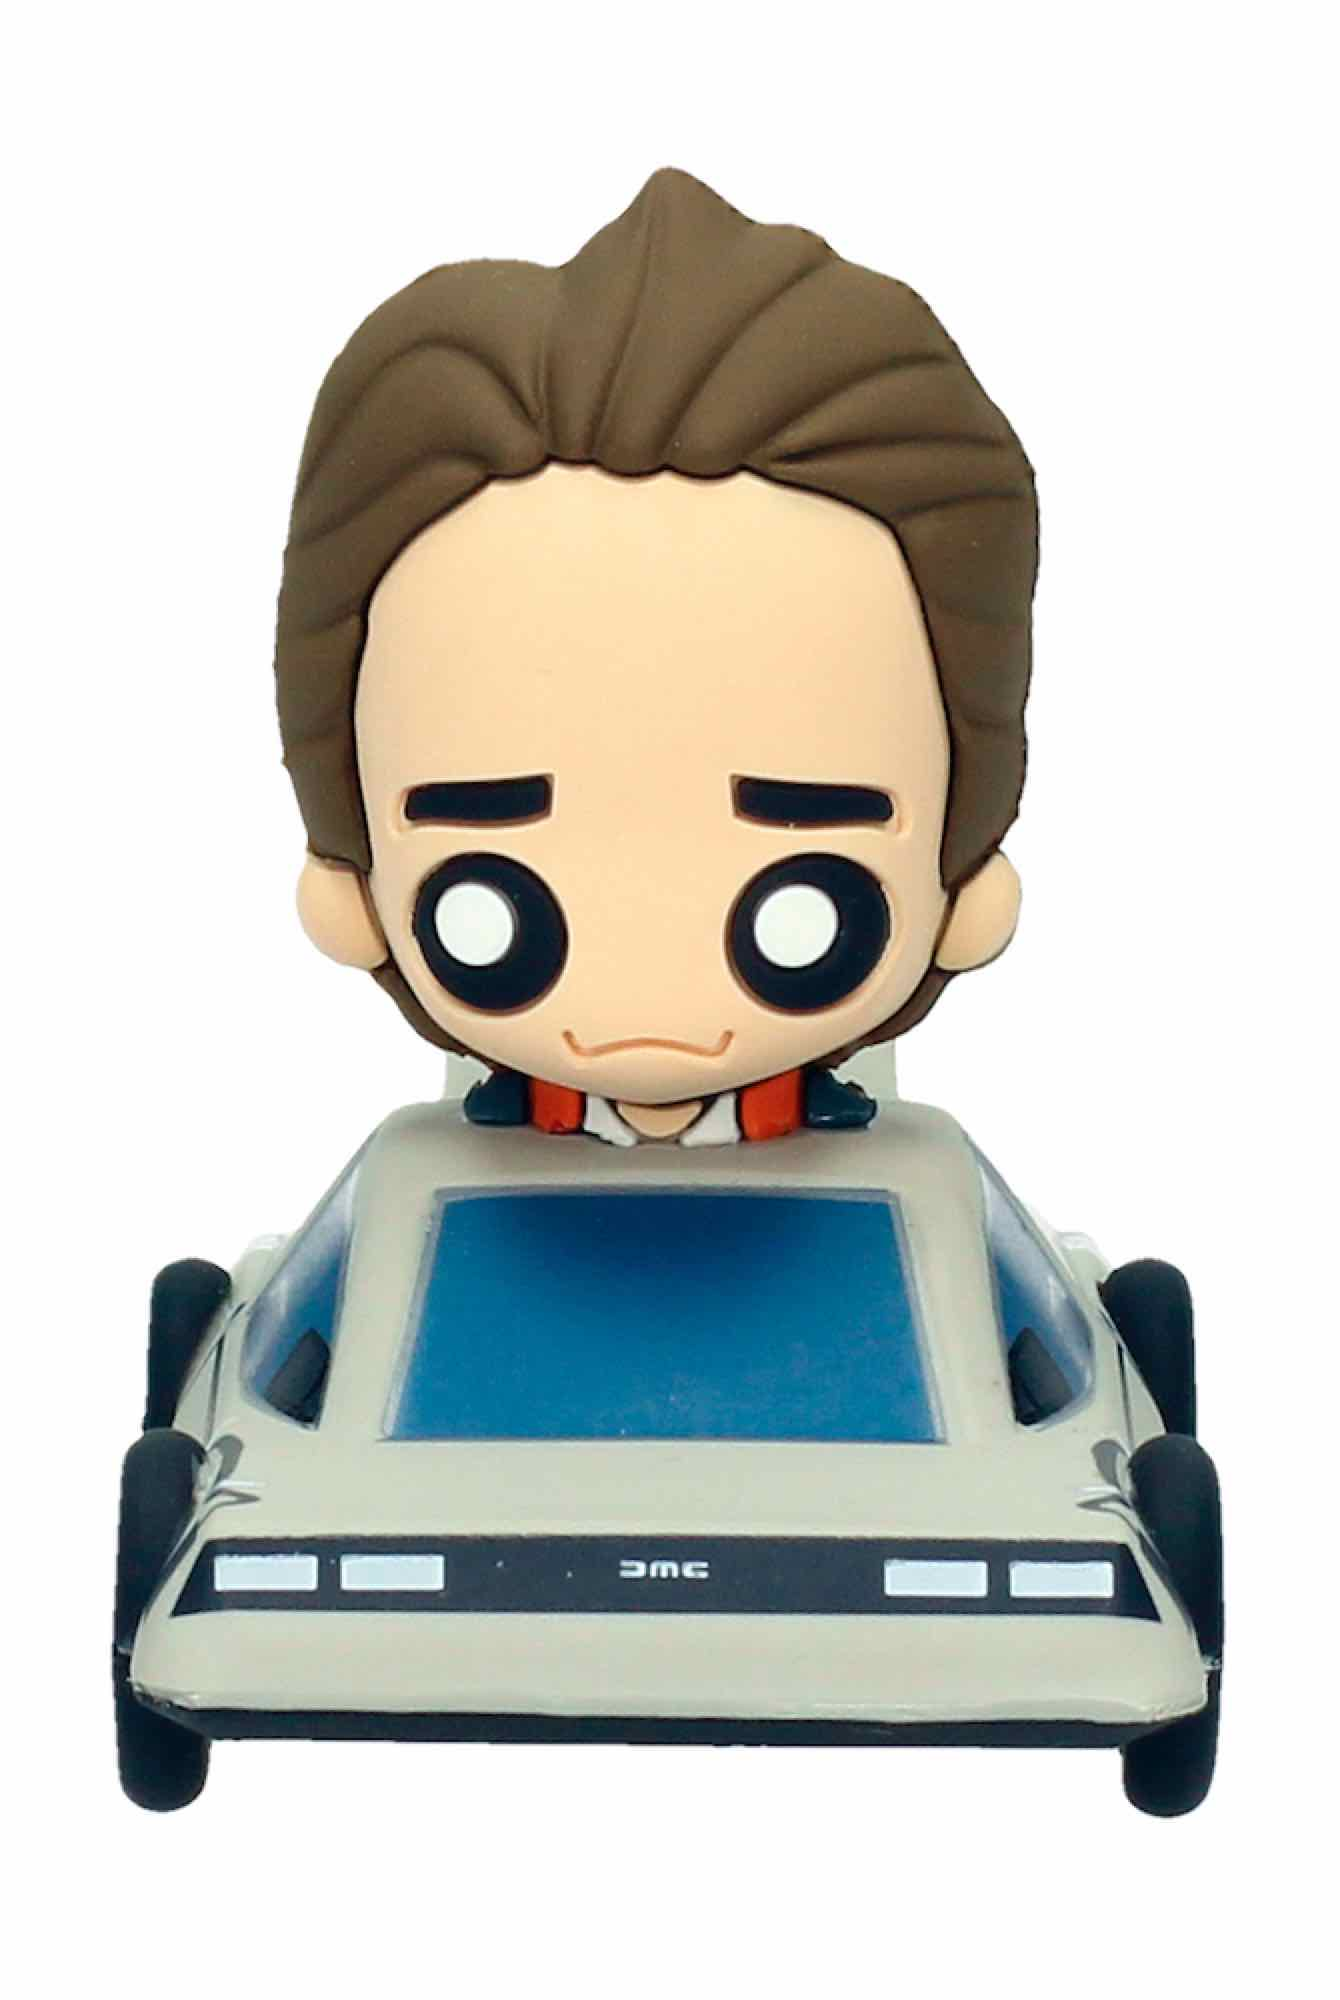 MARTY DELOREAN FIGURA GOMA POKIS REGRESO AL FUTURO